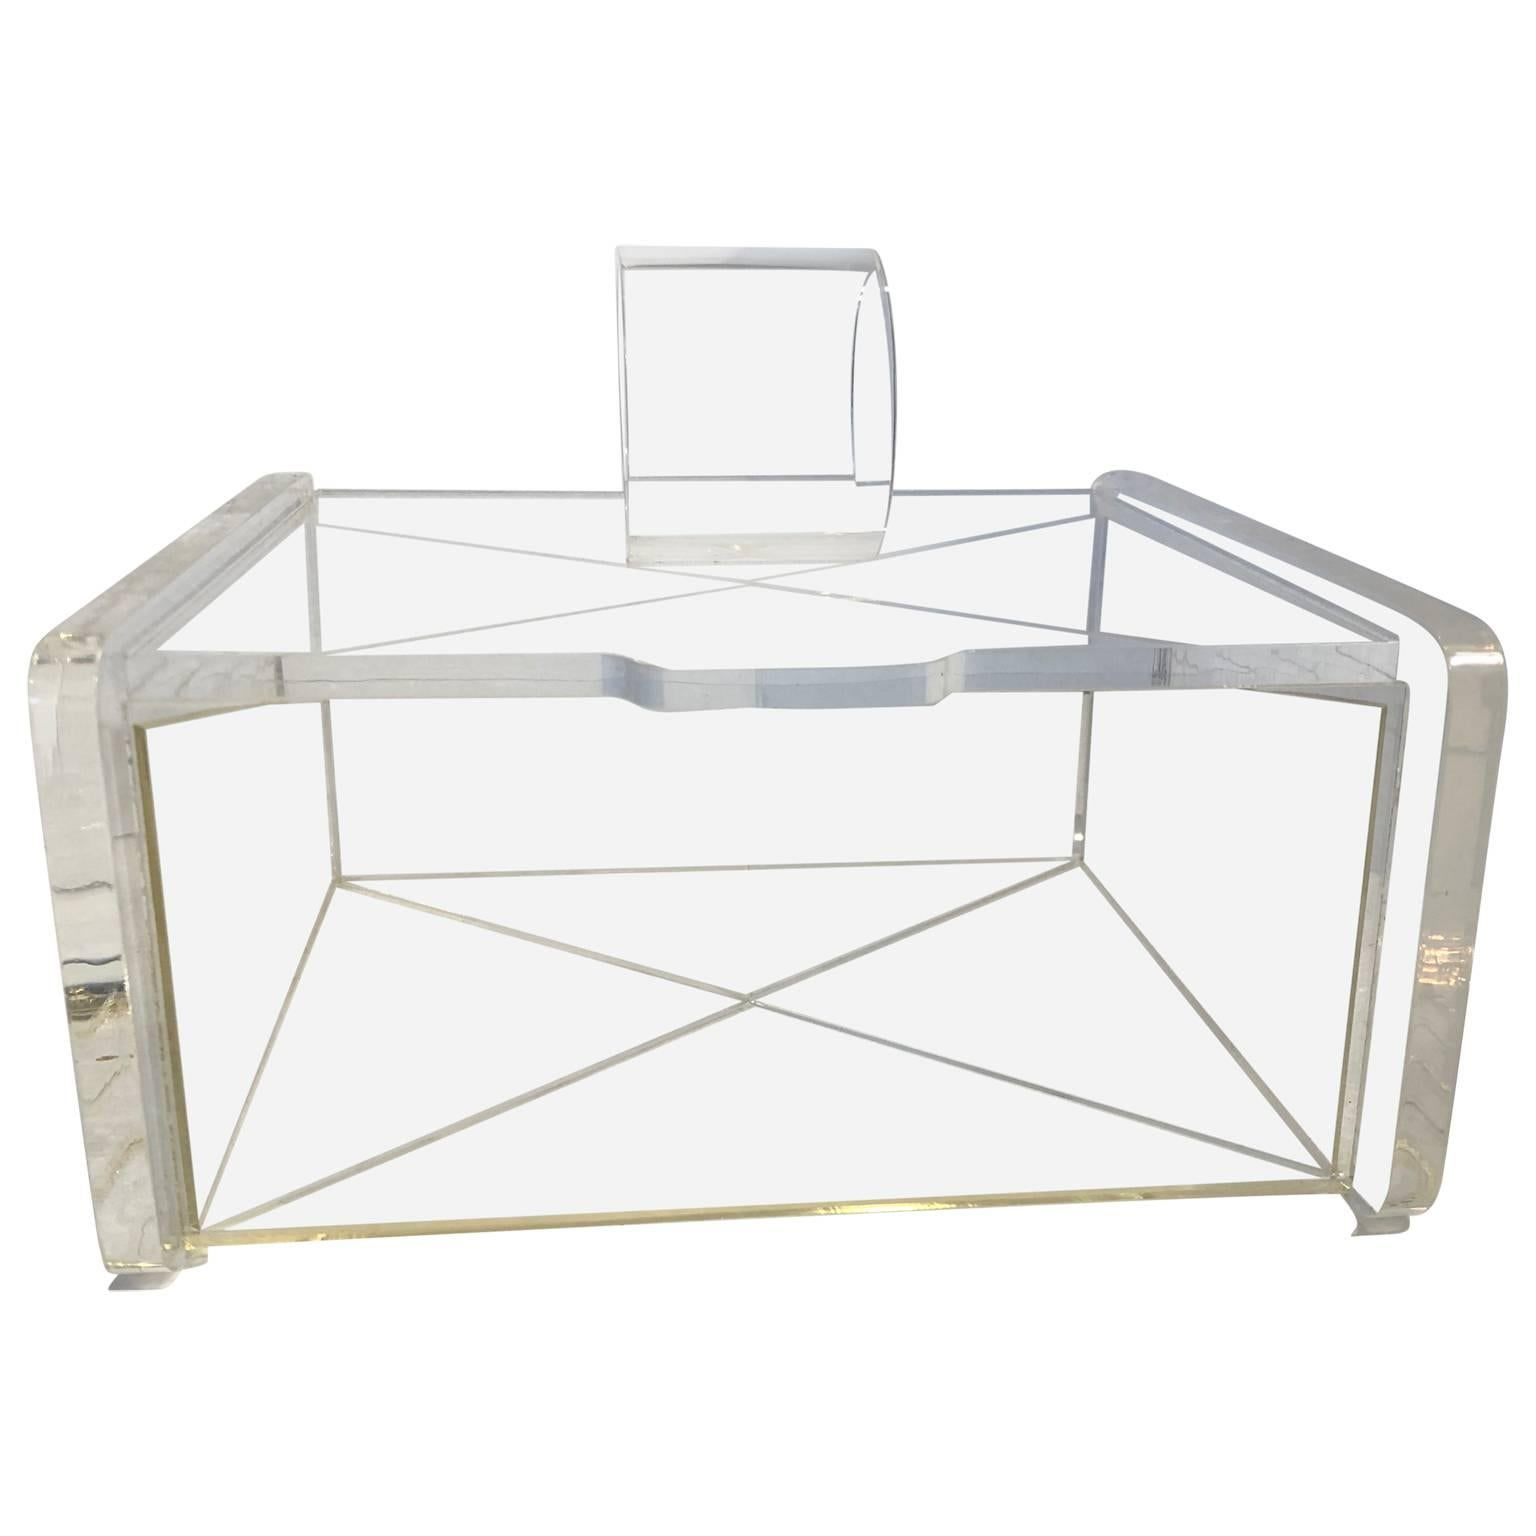 Midcentury Transparent Lucite Jewelry Box For Sale at 1stdibs